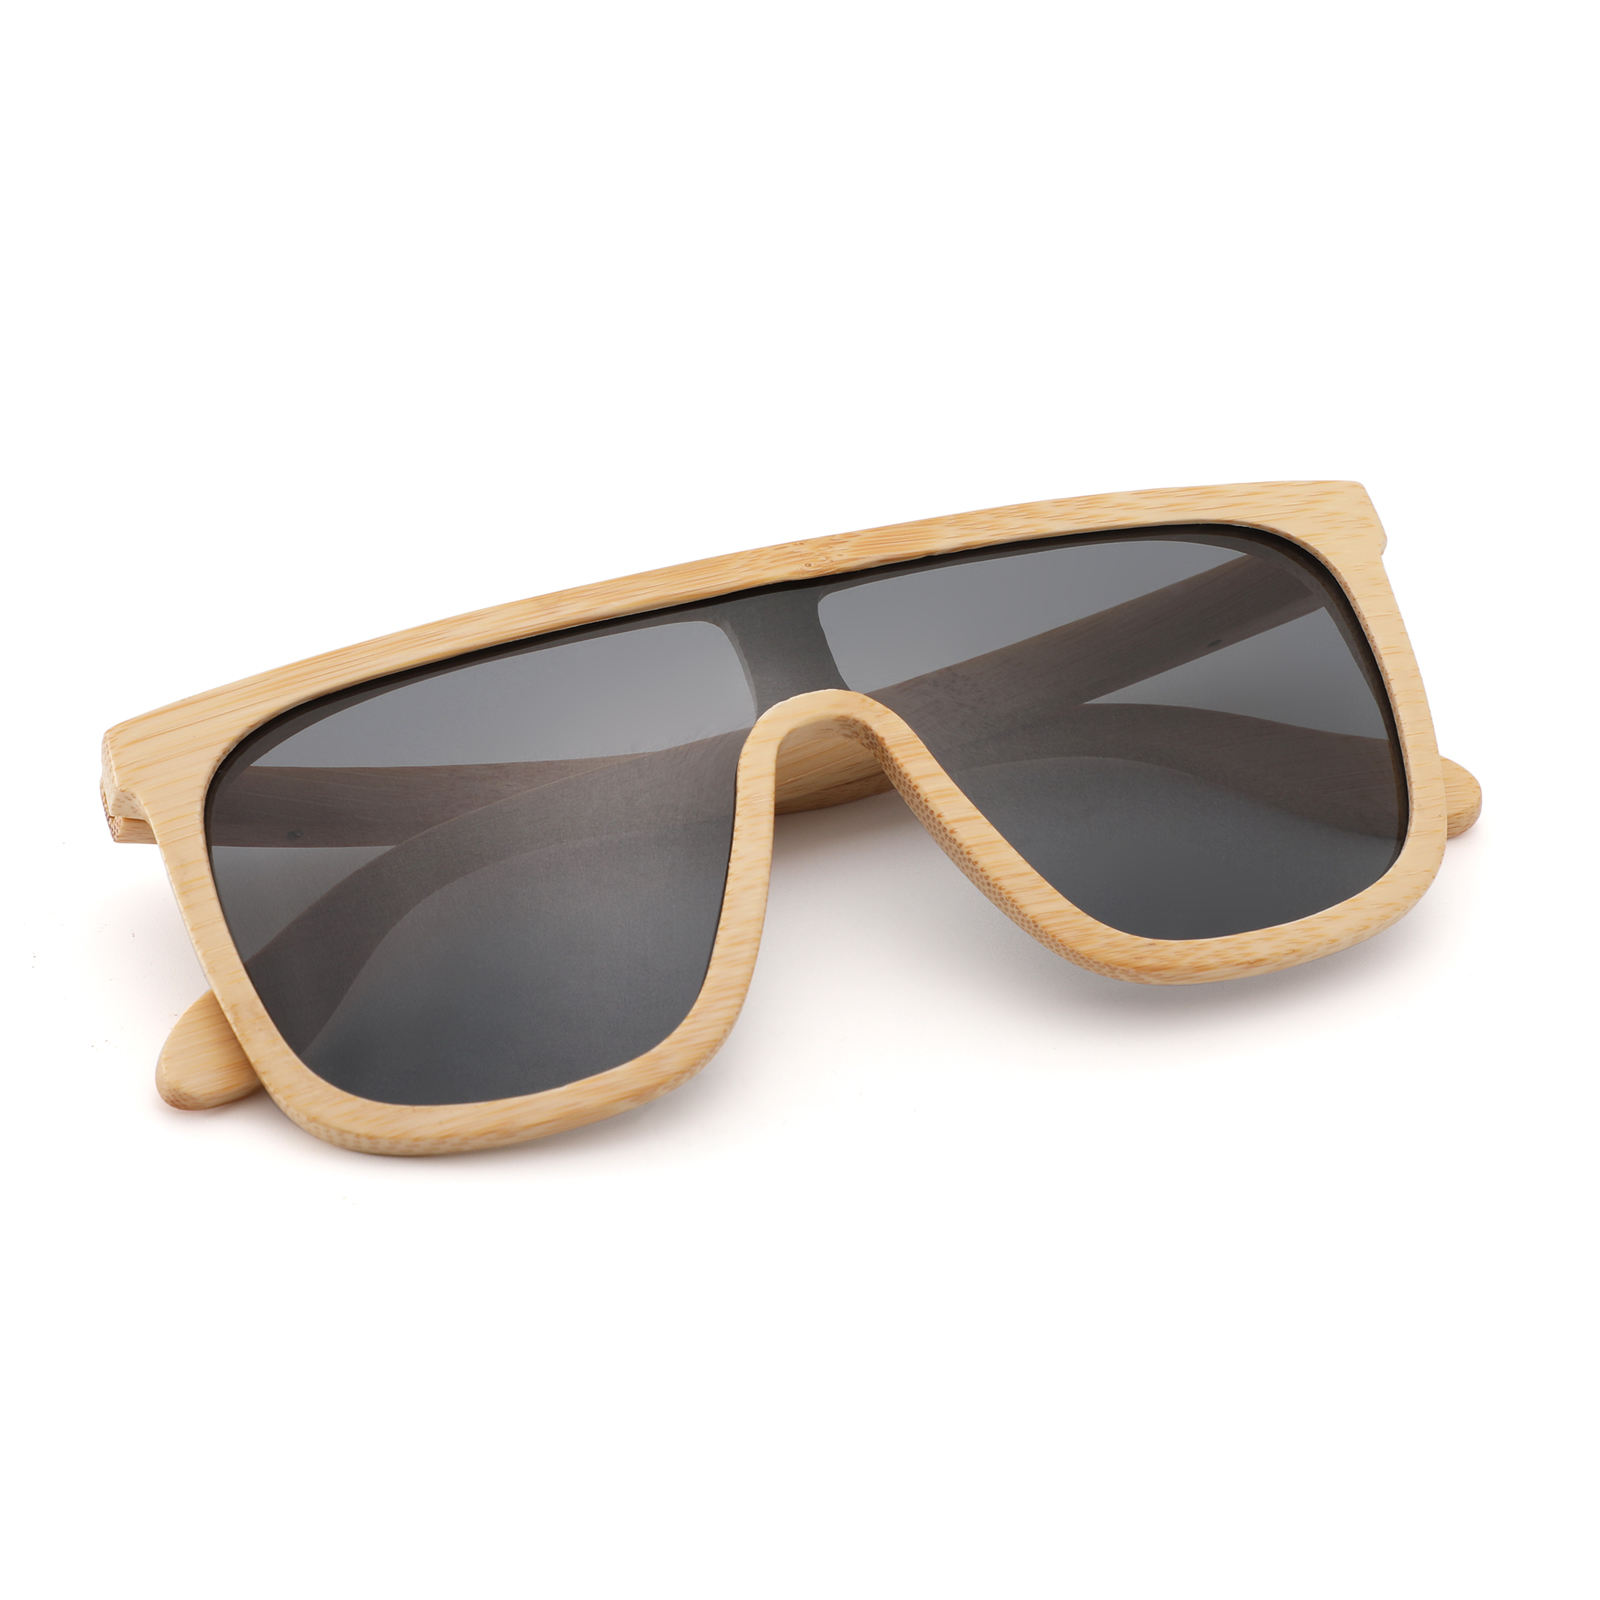 2020 Wood Eyewear One Piece Polarized Custom Logo Wooden Sunglasses